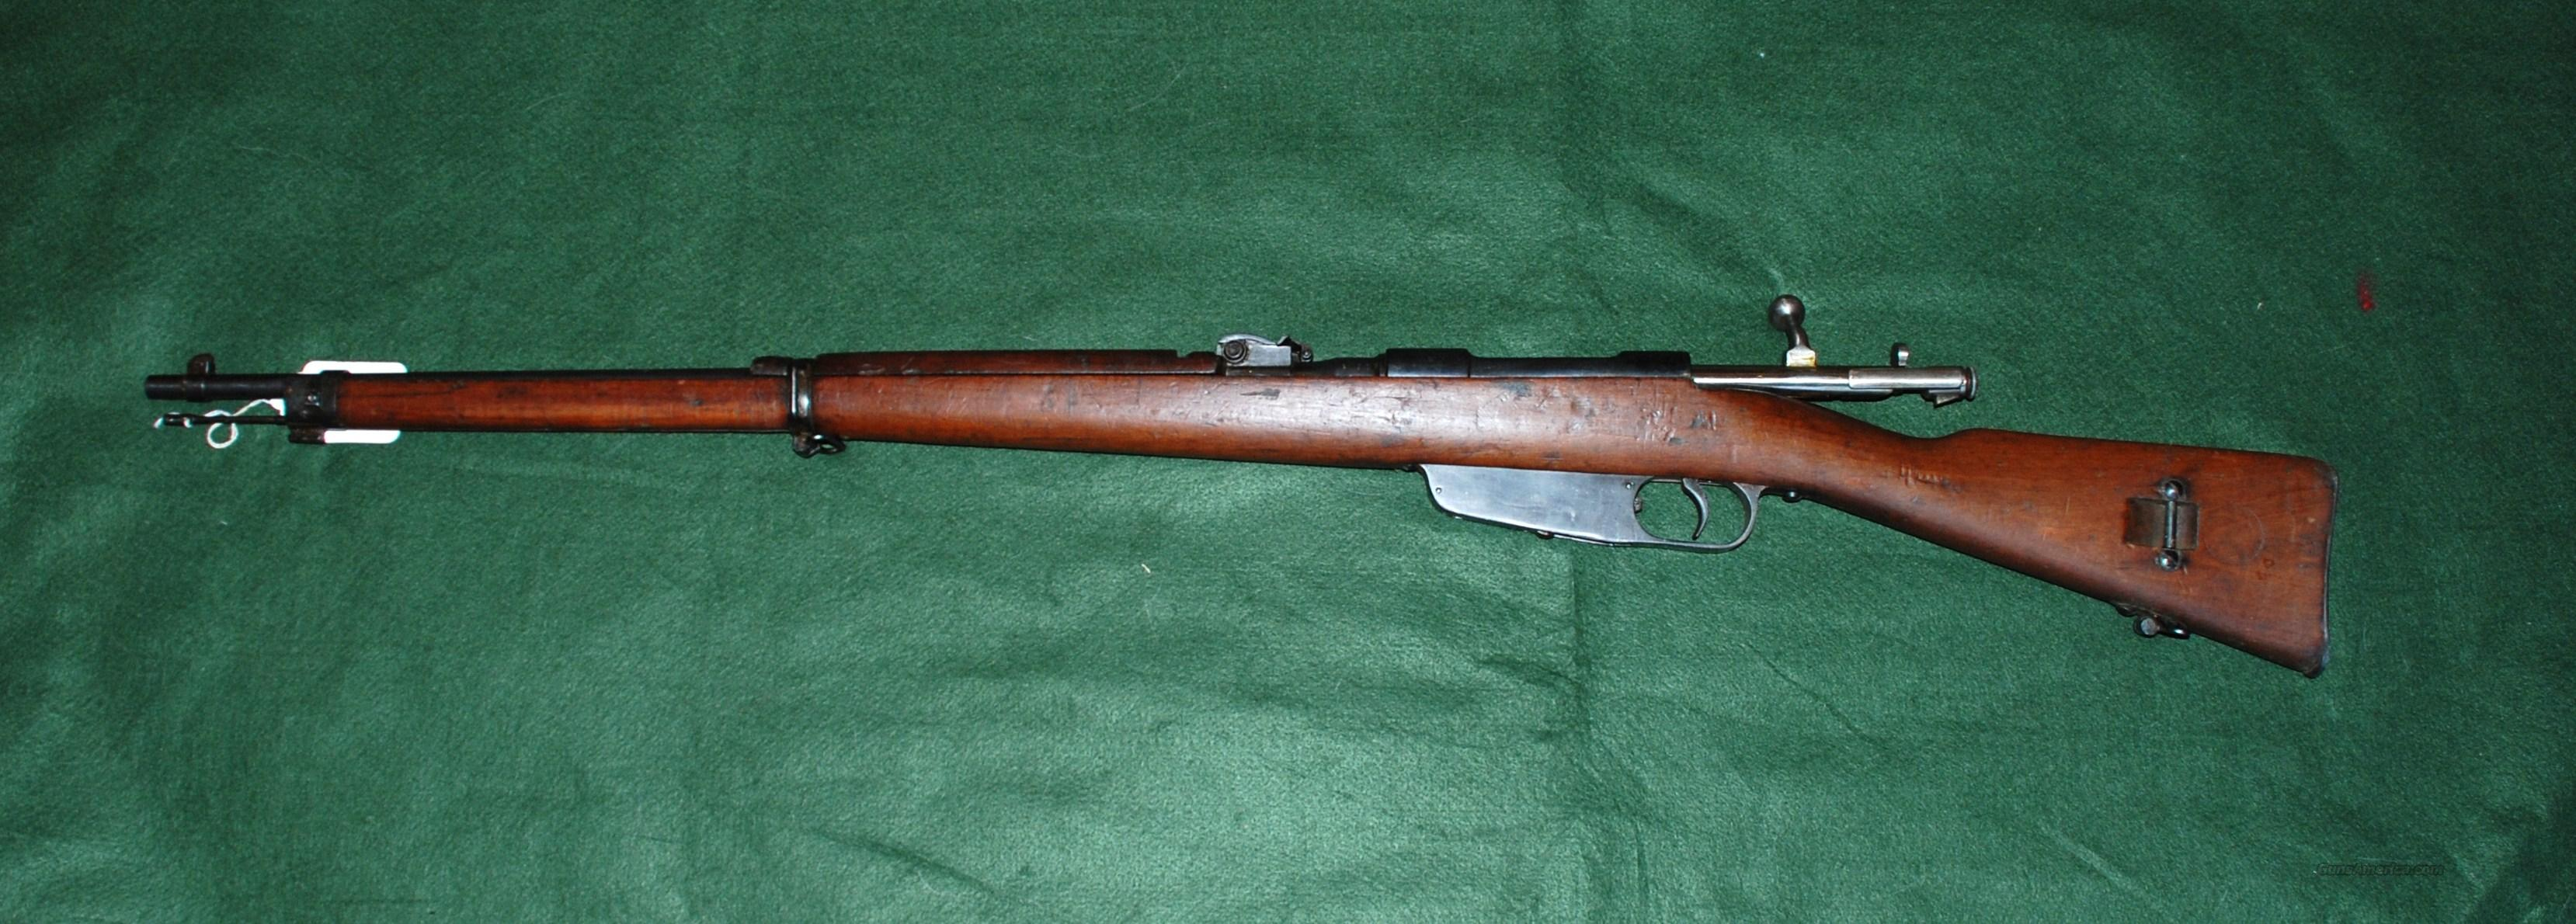 Italian Carcano M41 Rifle   Guns > Rifles > Military Misc. Rifles Non-US > Other